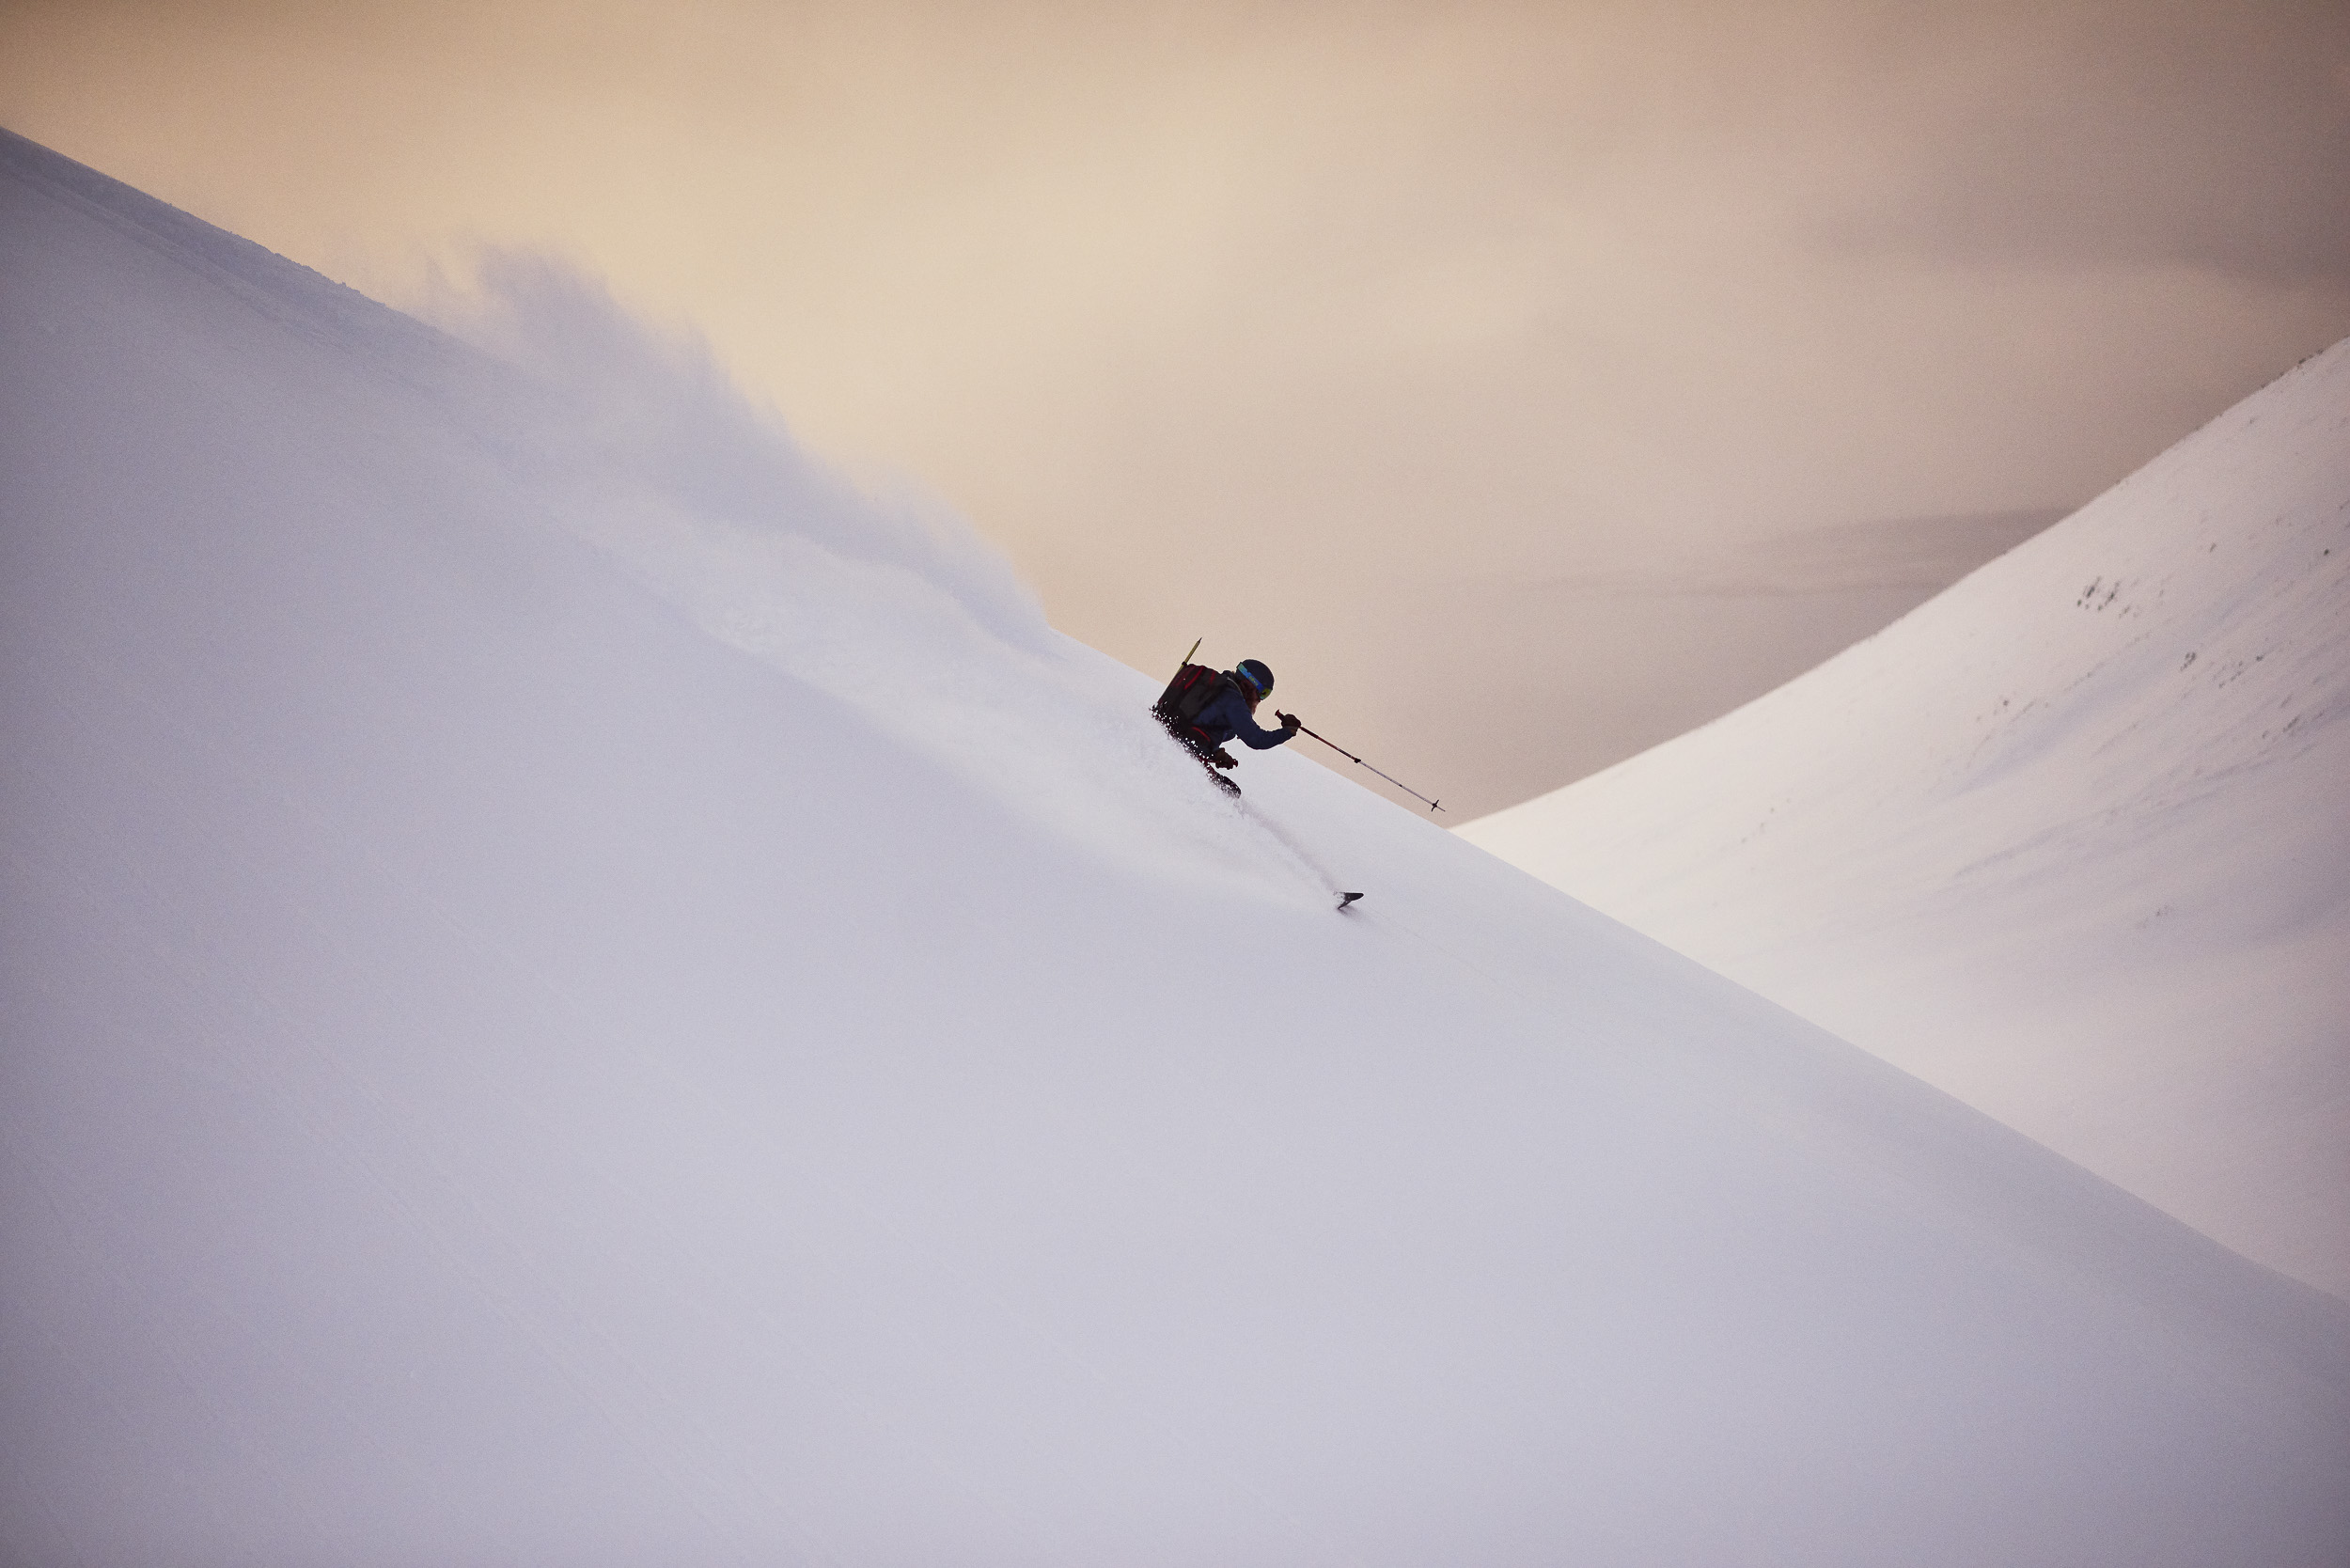 Iceland-Backcountry-Skiing-2169